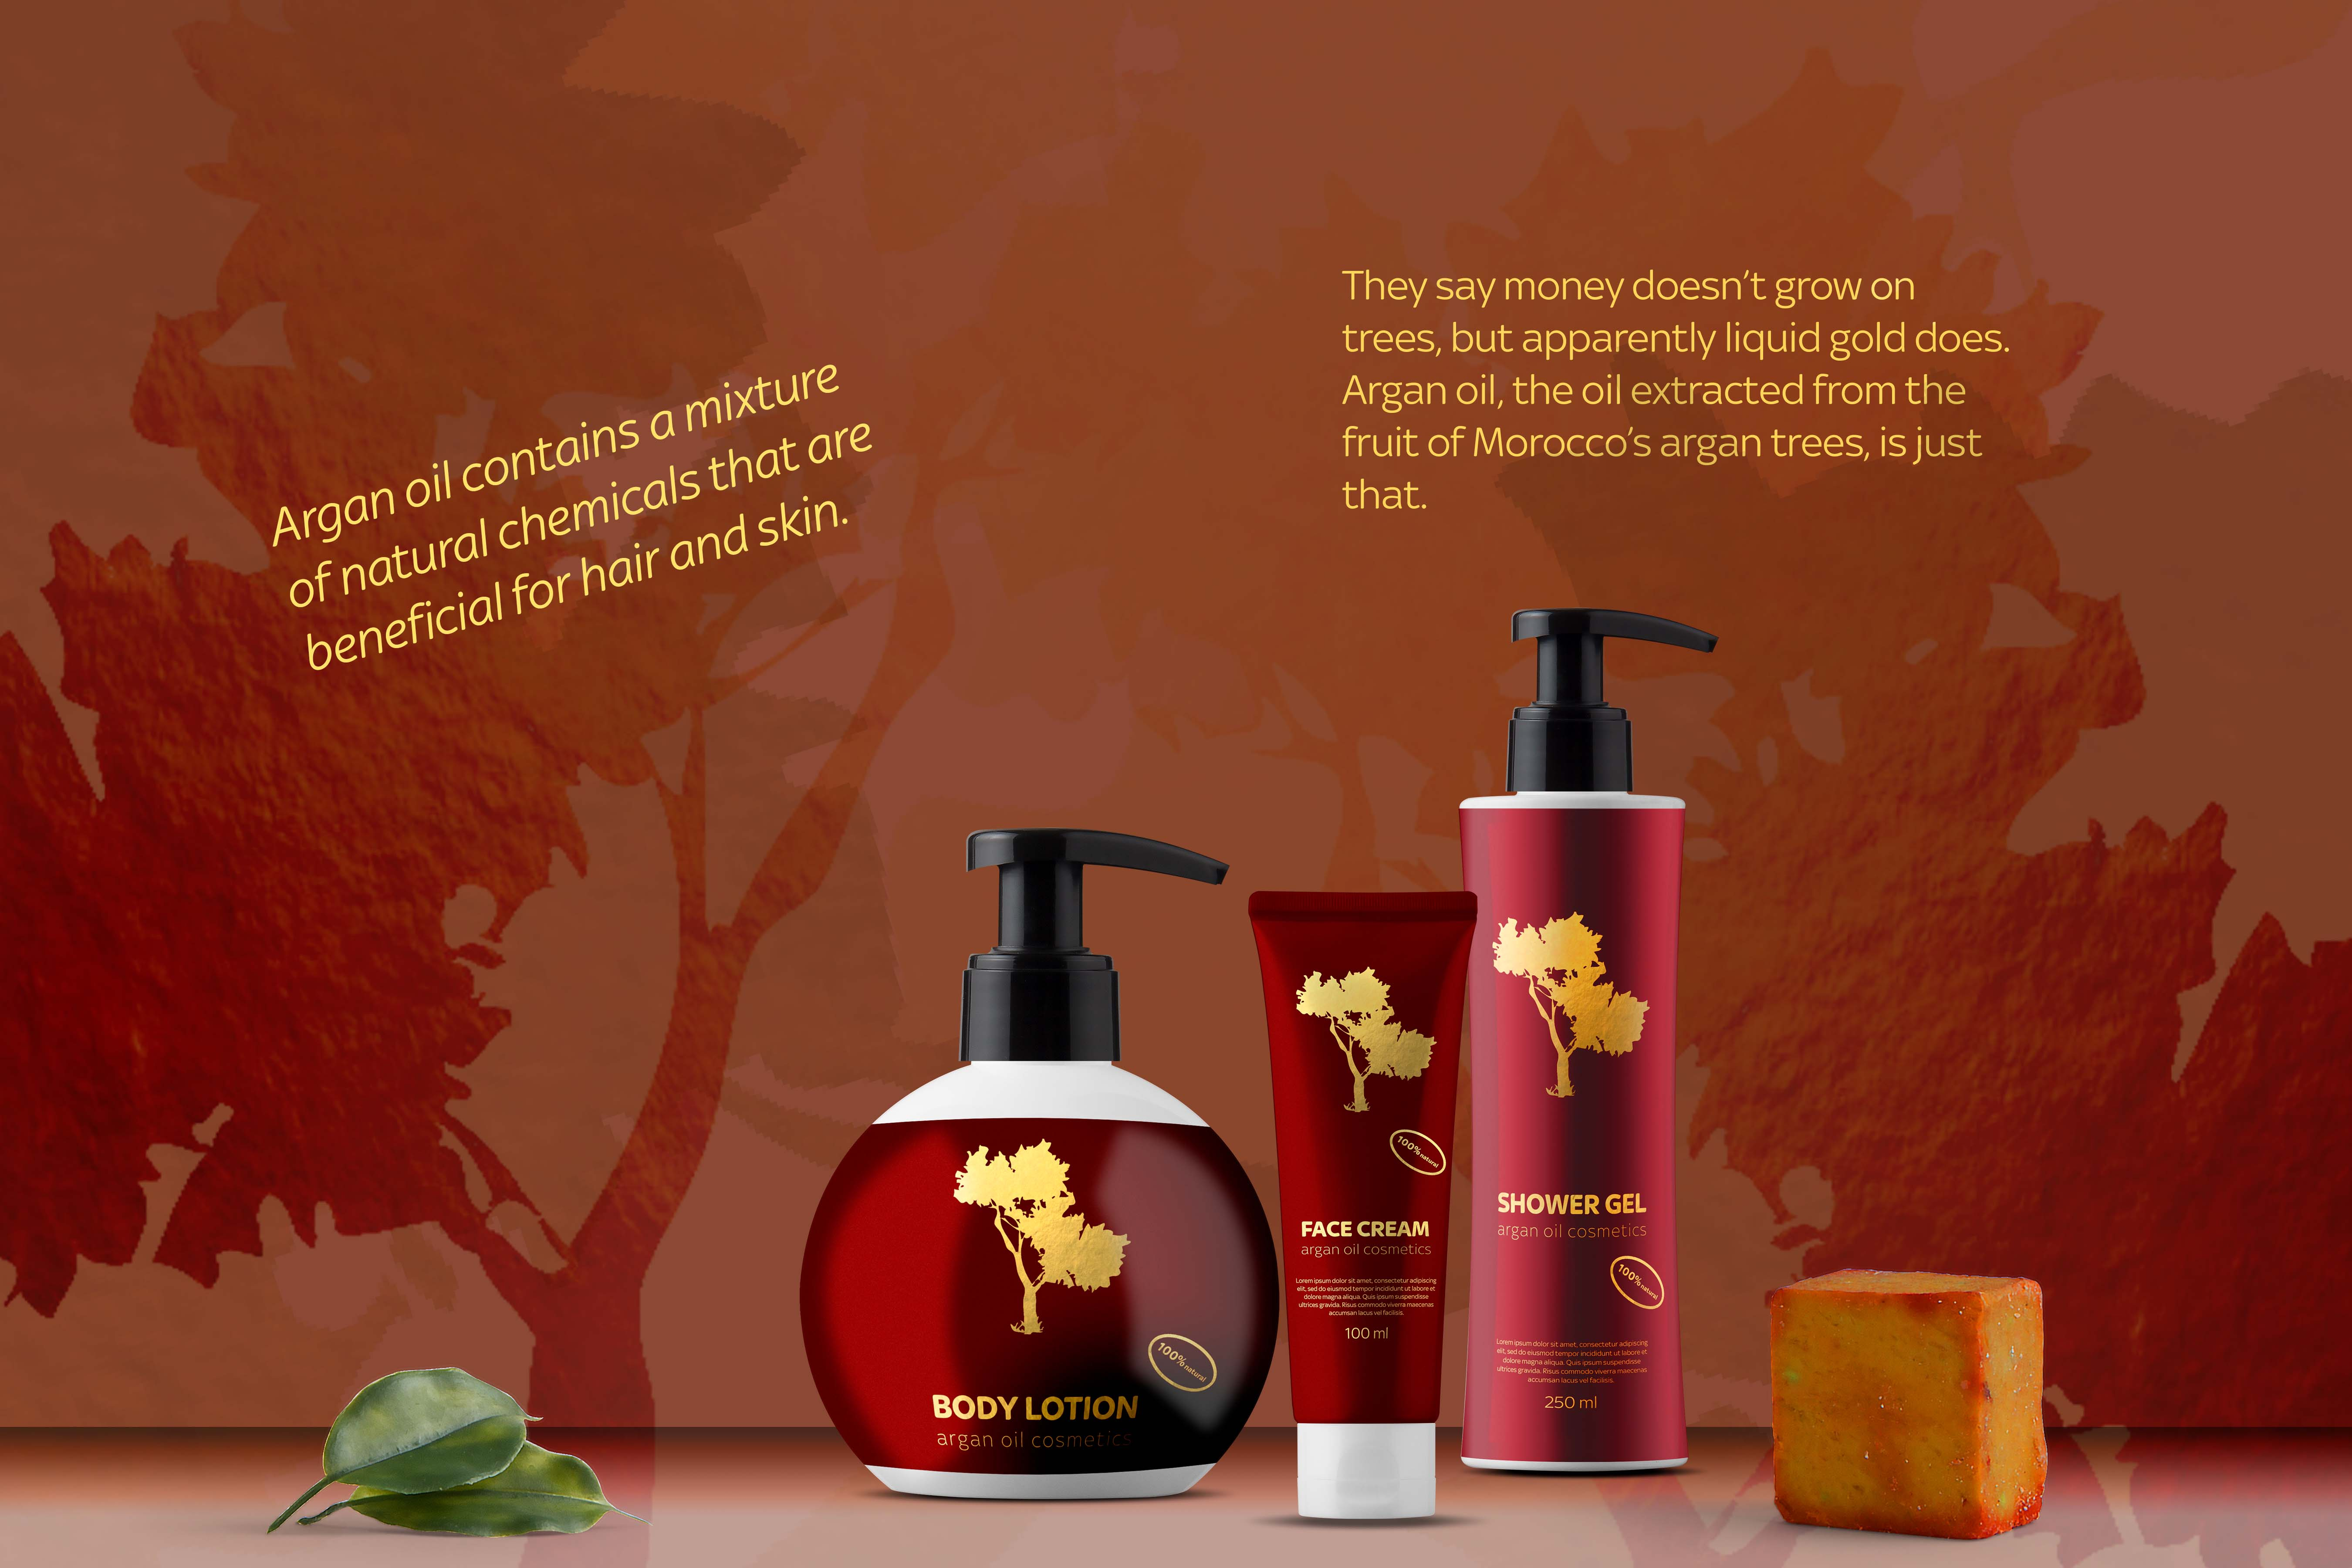 Argan oil cosmetics brand